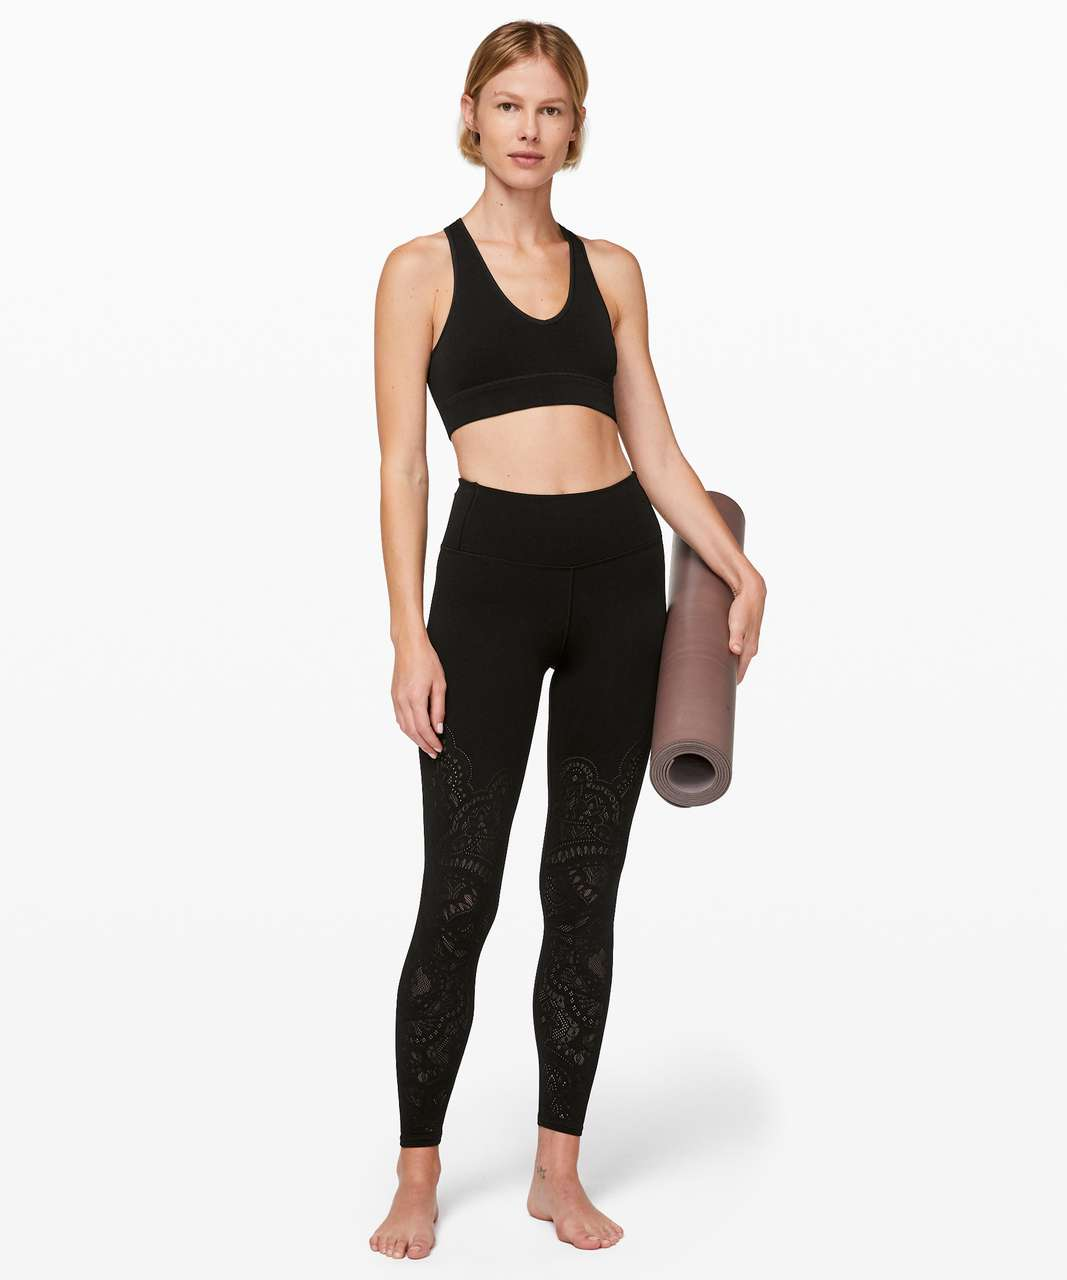 Lululemon Reveal Bra *Zen Expression - Black